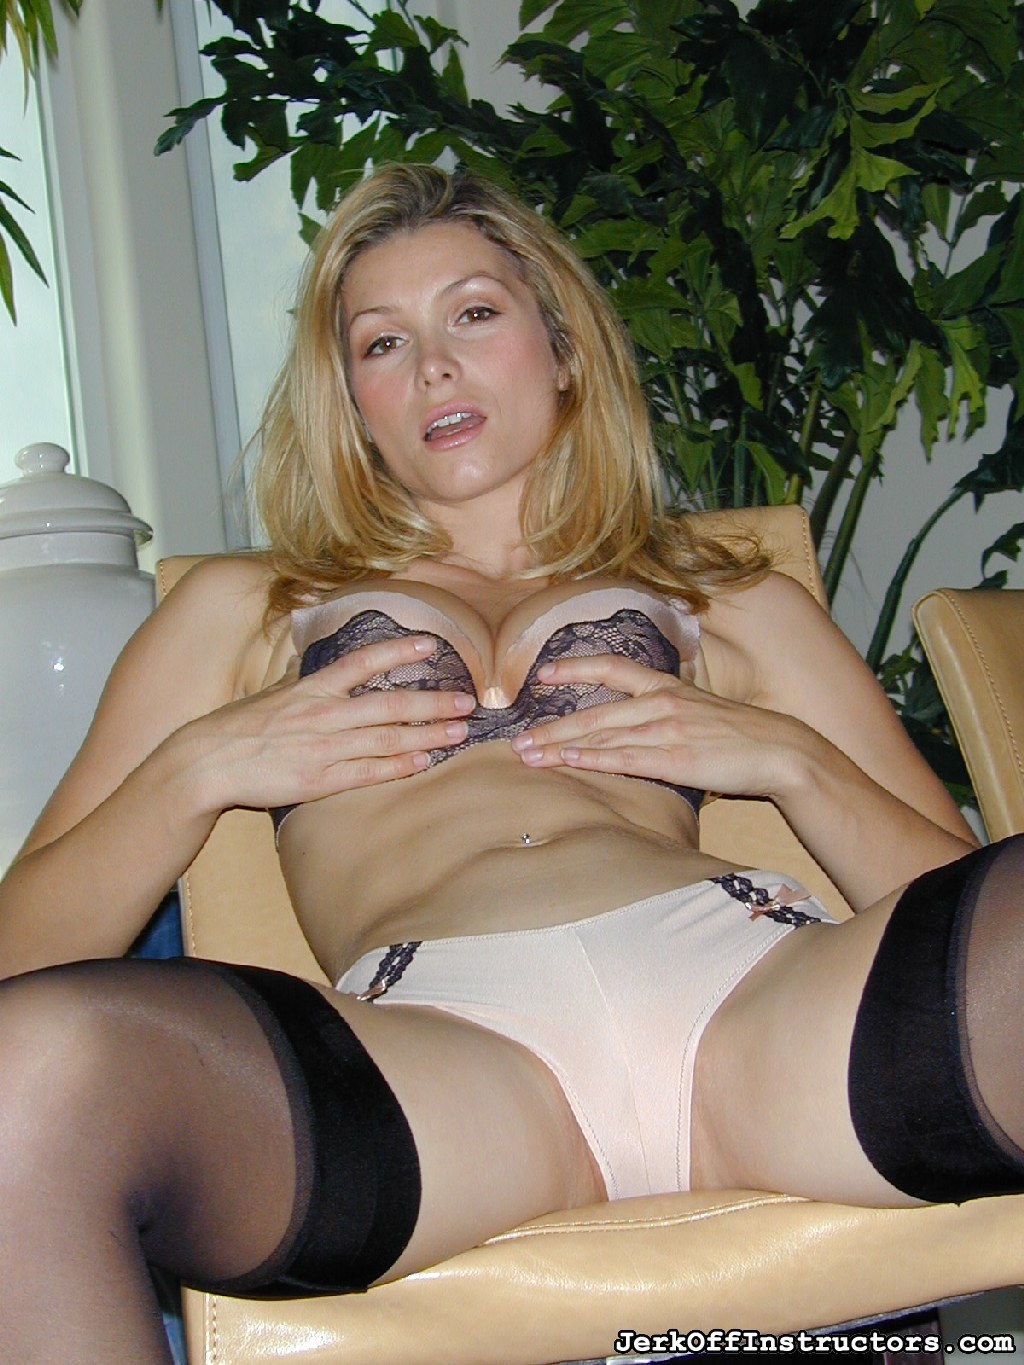 Nude bra amp panties 20. In tan nylon bikini panties and bra with black thigh highs, Heather Vandeven keeps you elegant by bending over and standing over you. She wants you to get a pretty look at what she brought you.